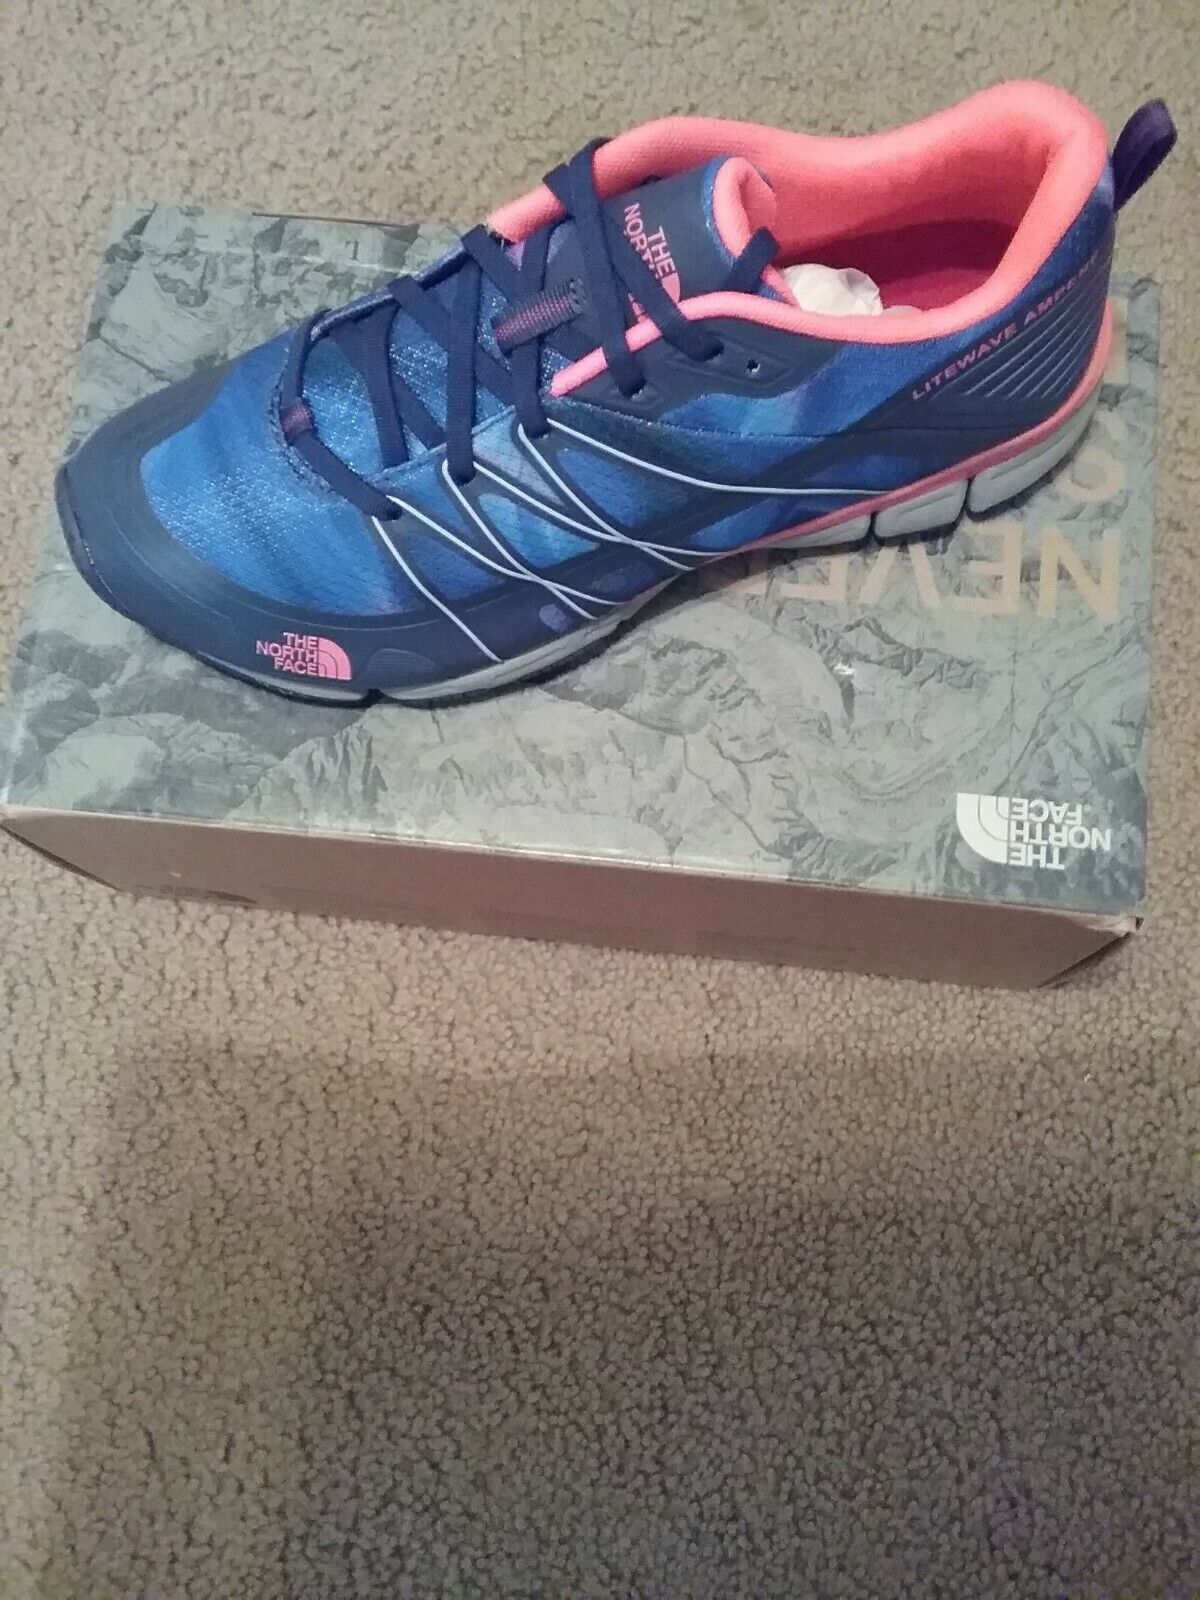 The North Face Women's Litewave Ampere Trainer shoes,Size 9.5 NEW MSRP 90.00